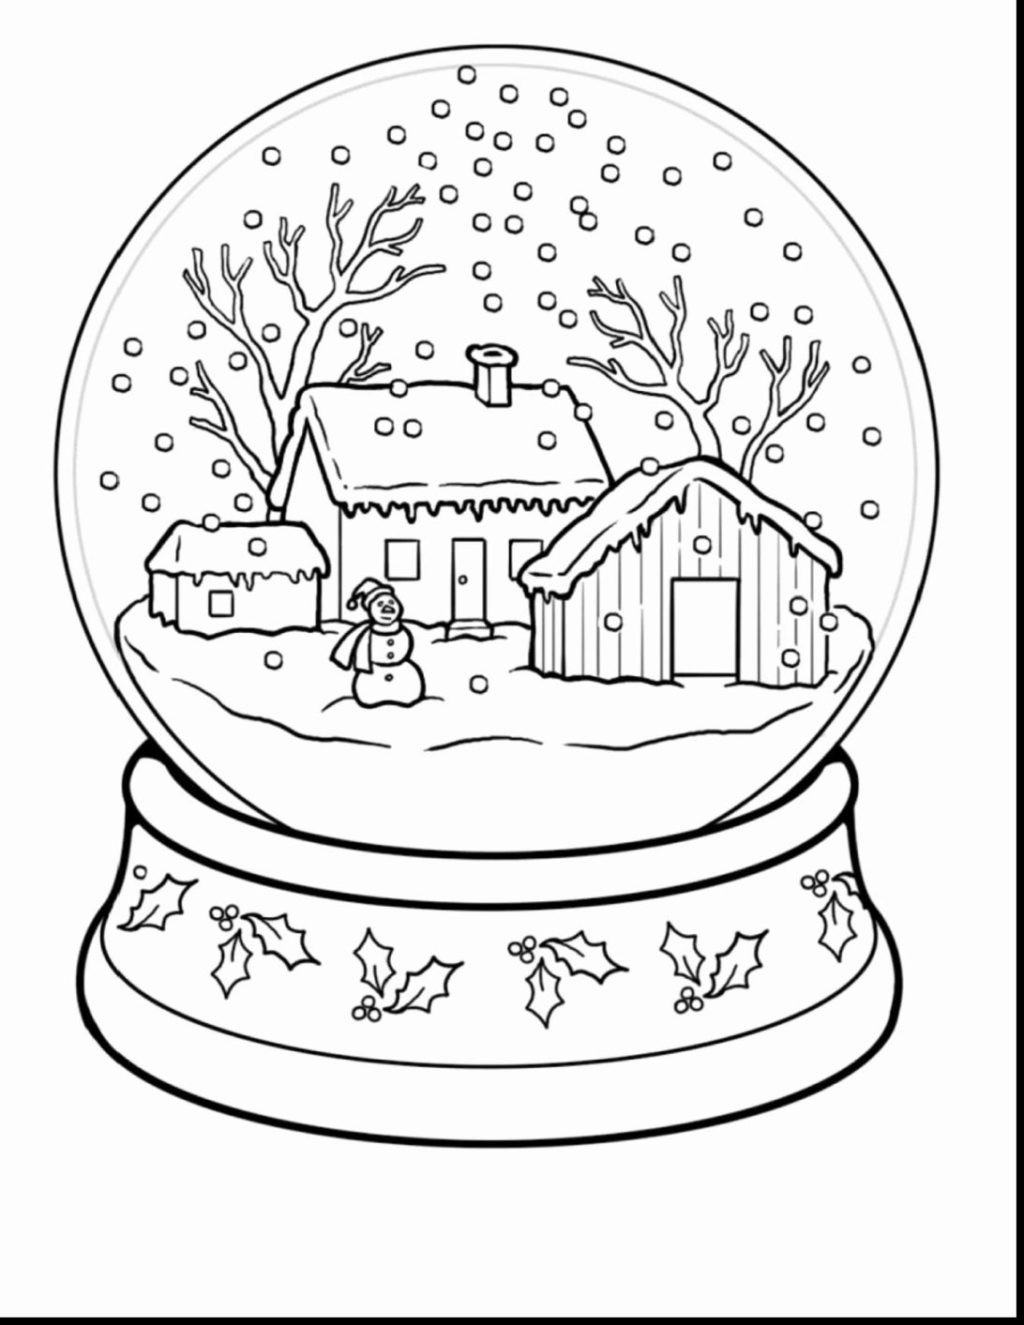 Theme Worksheets Middle School Pdf Worksheet Free Architecture Coloring Pages Elegant Winter